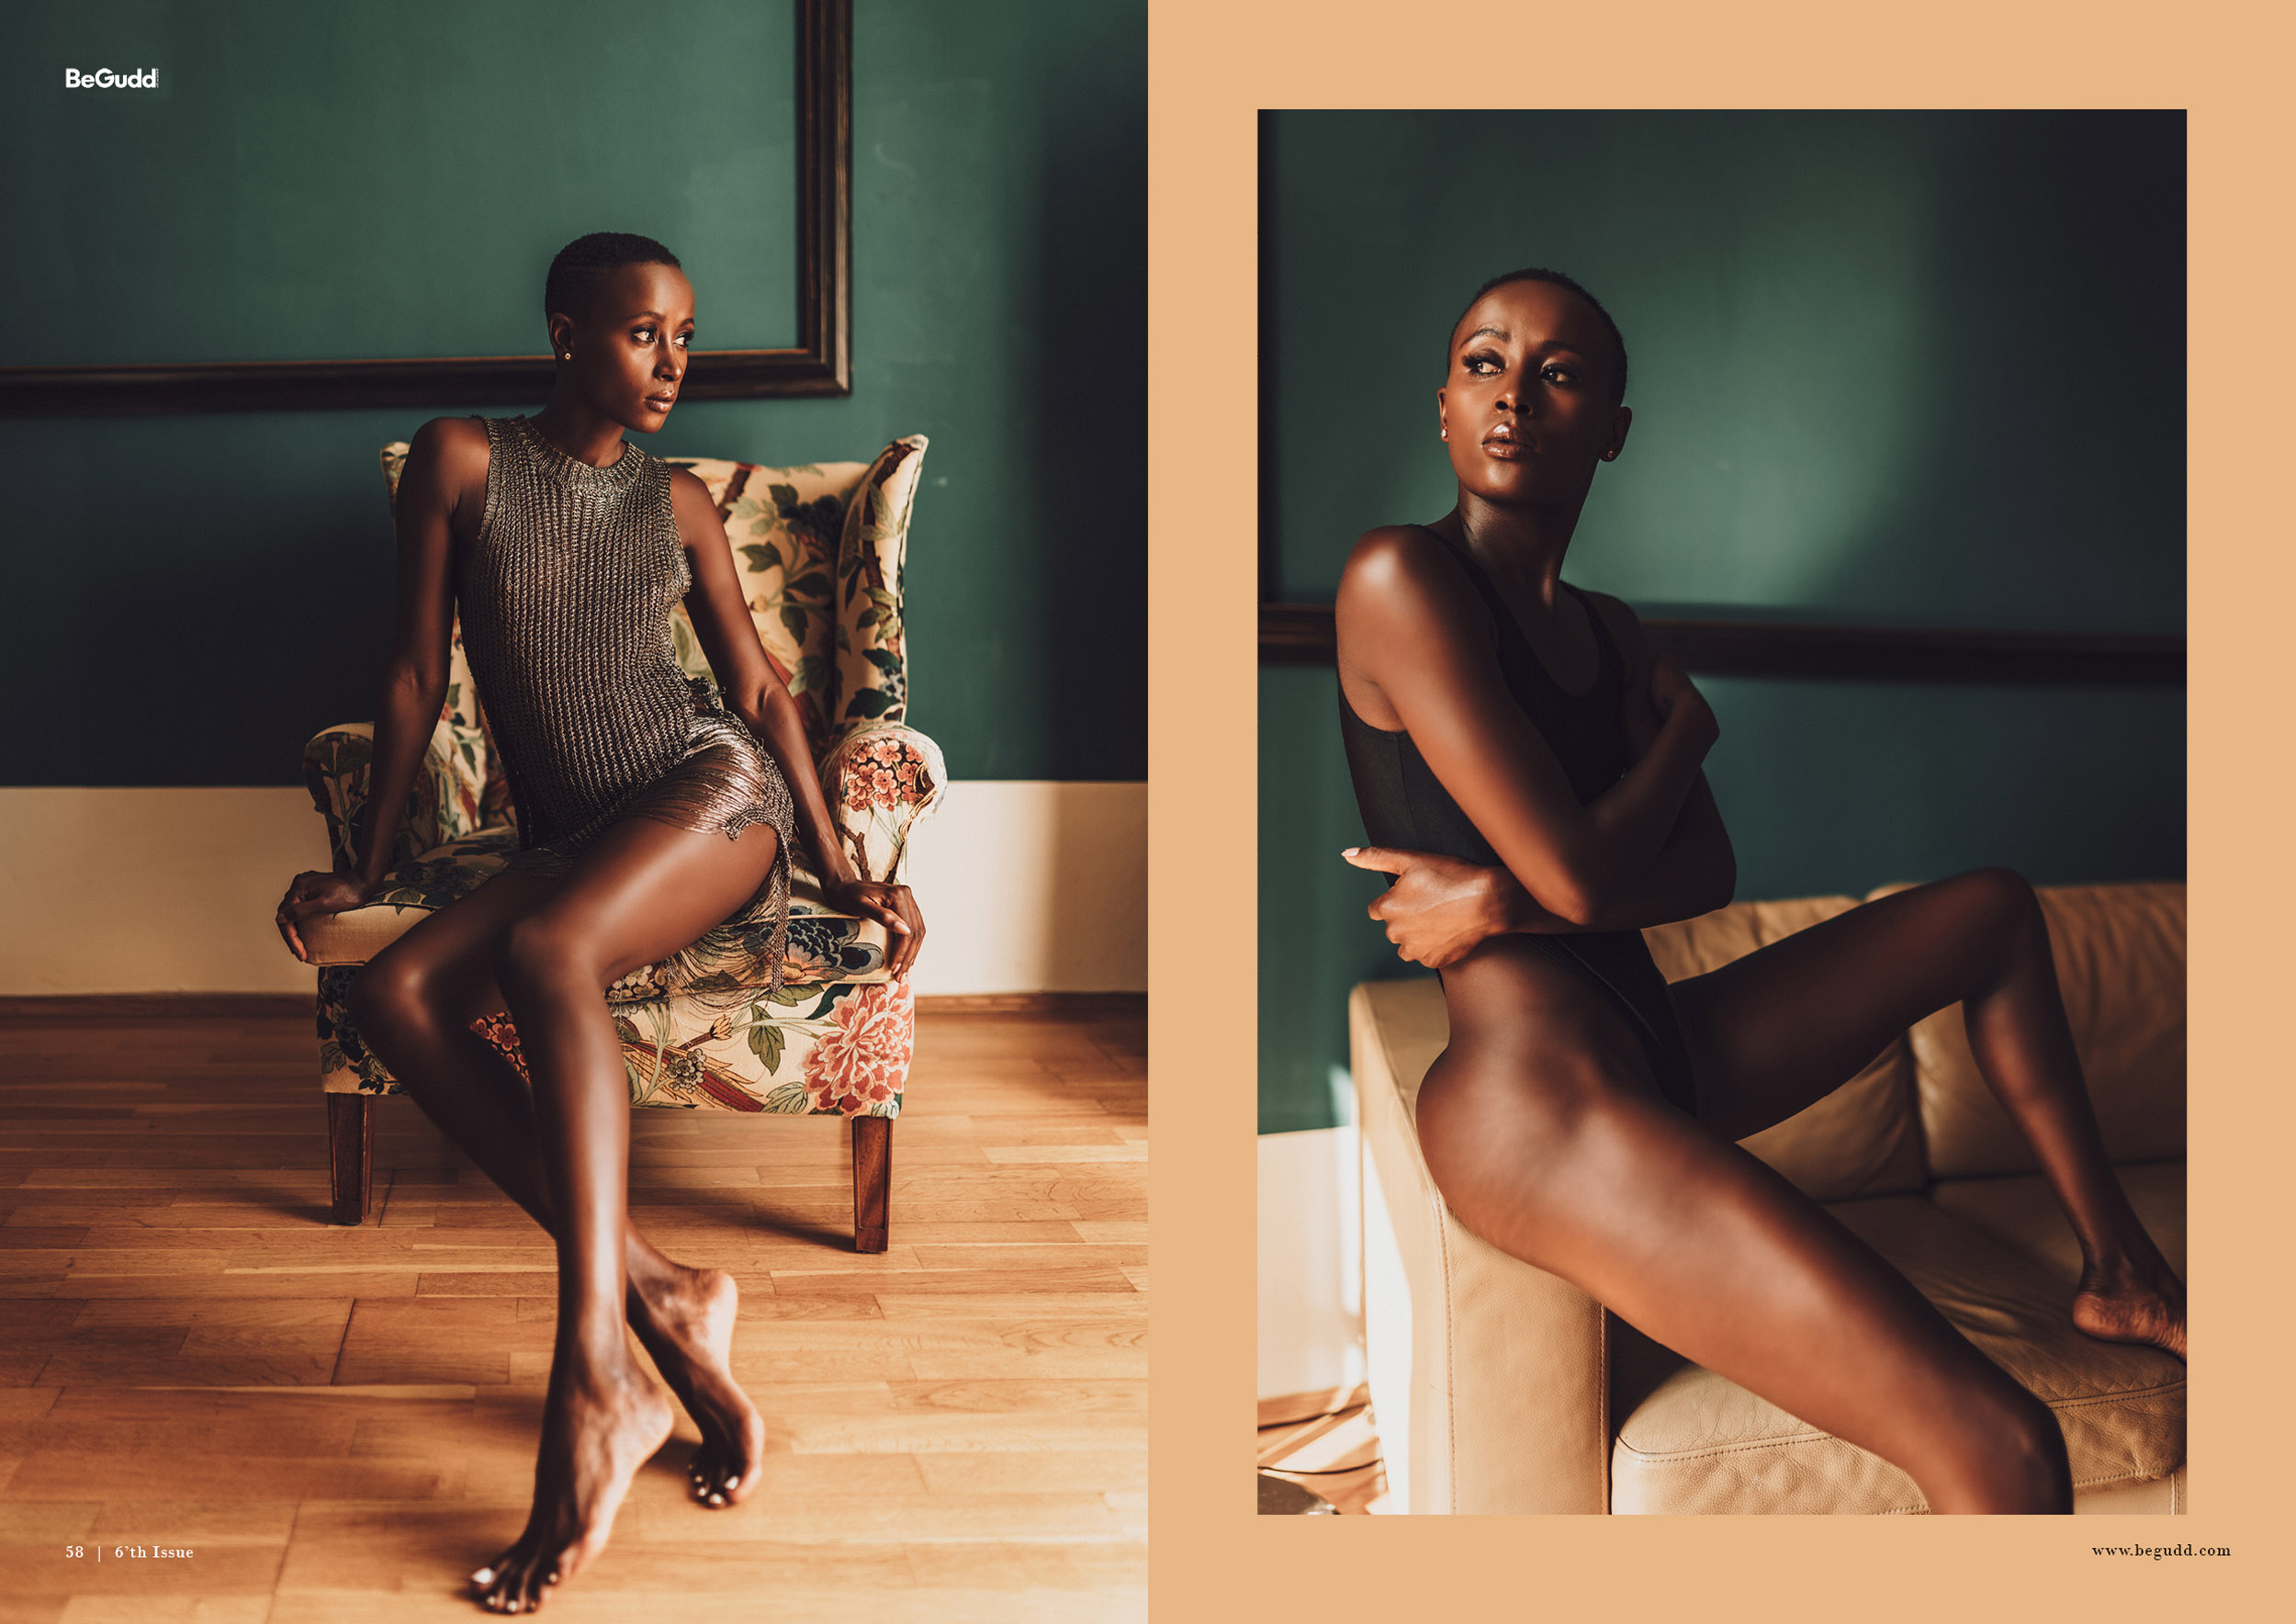 begudd magazine lena by alex alexandrescu esq photographer sexy hot nude erotic editorial melanin queen